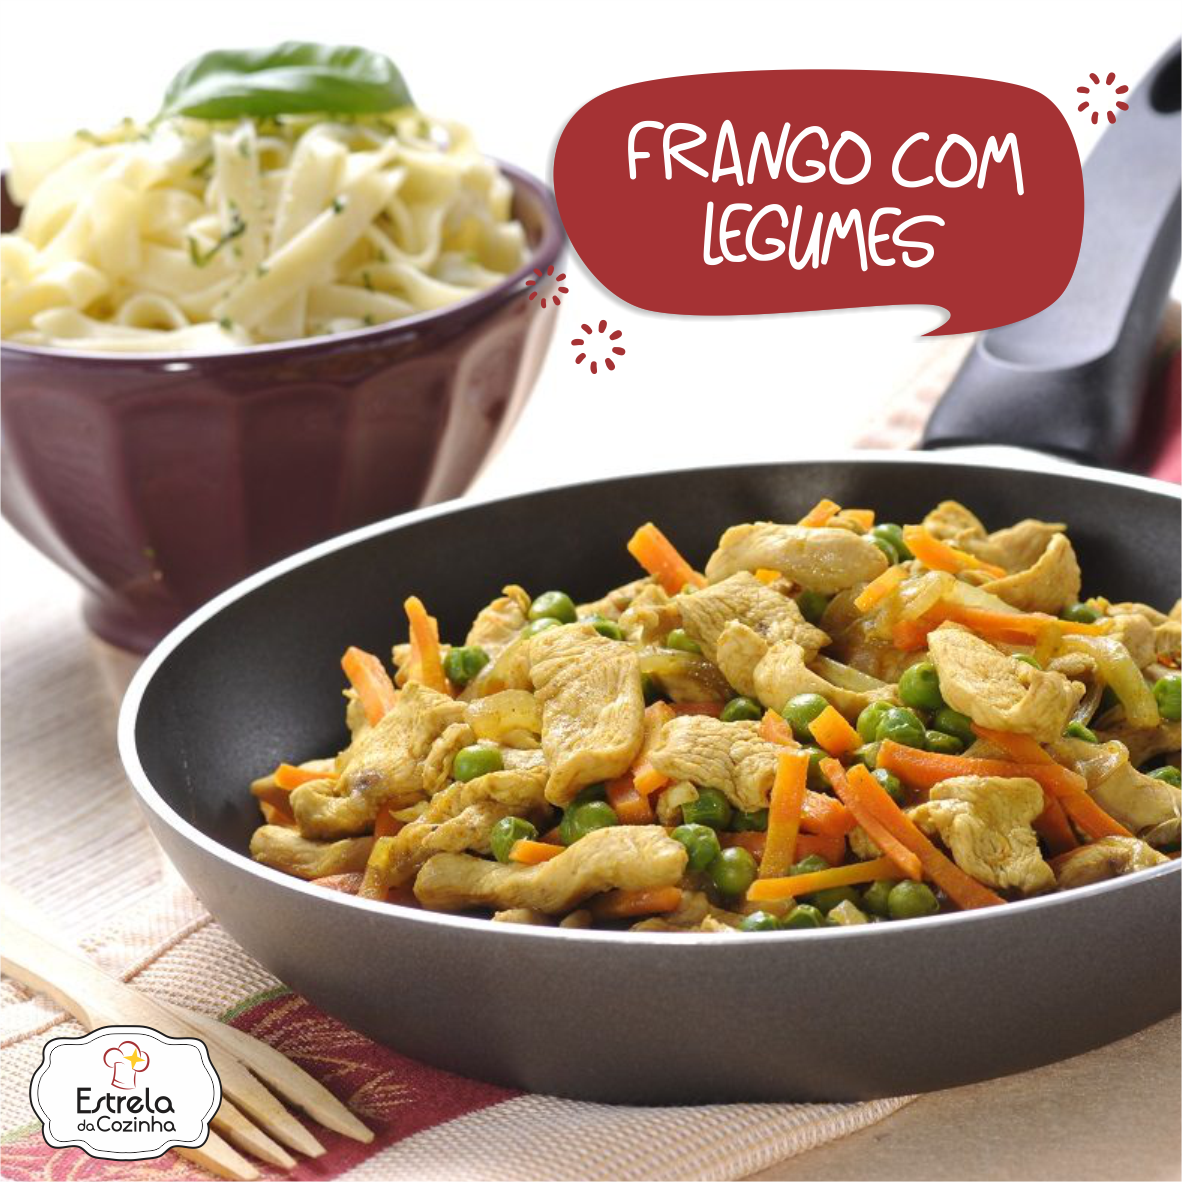 You are currently viewing Frango com legumes